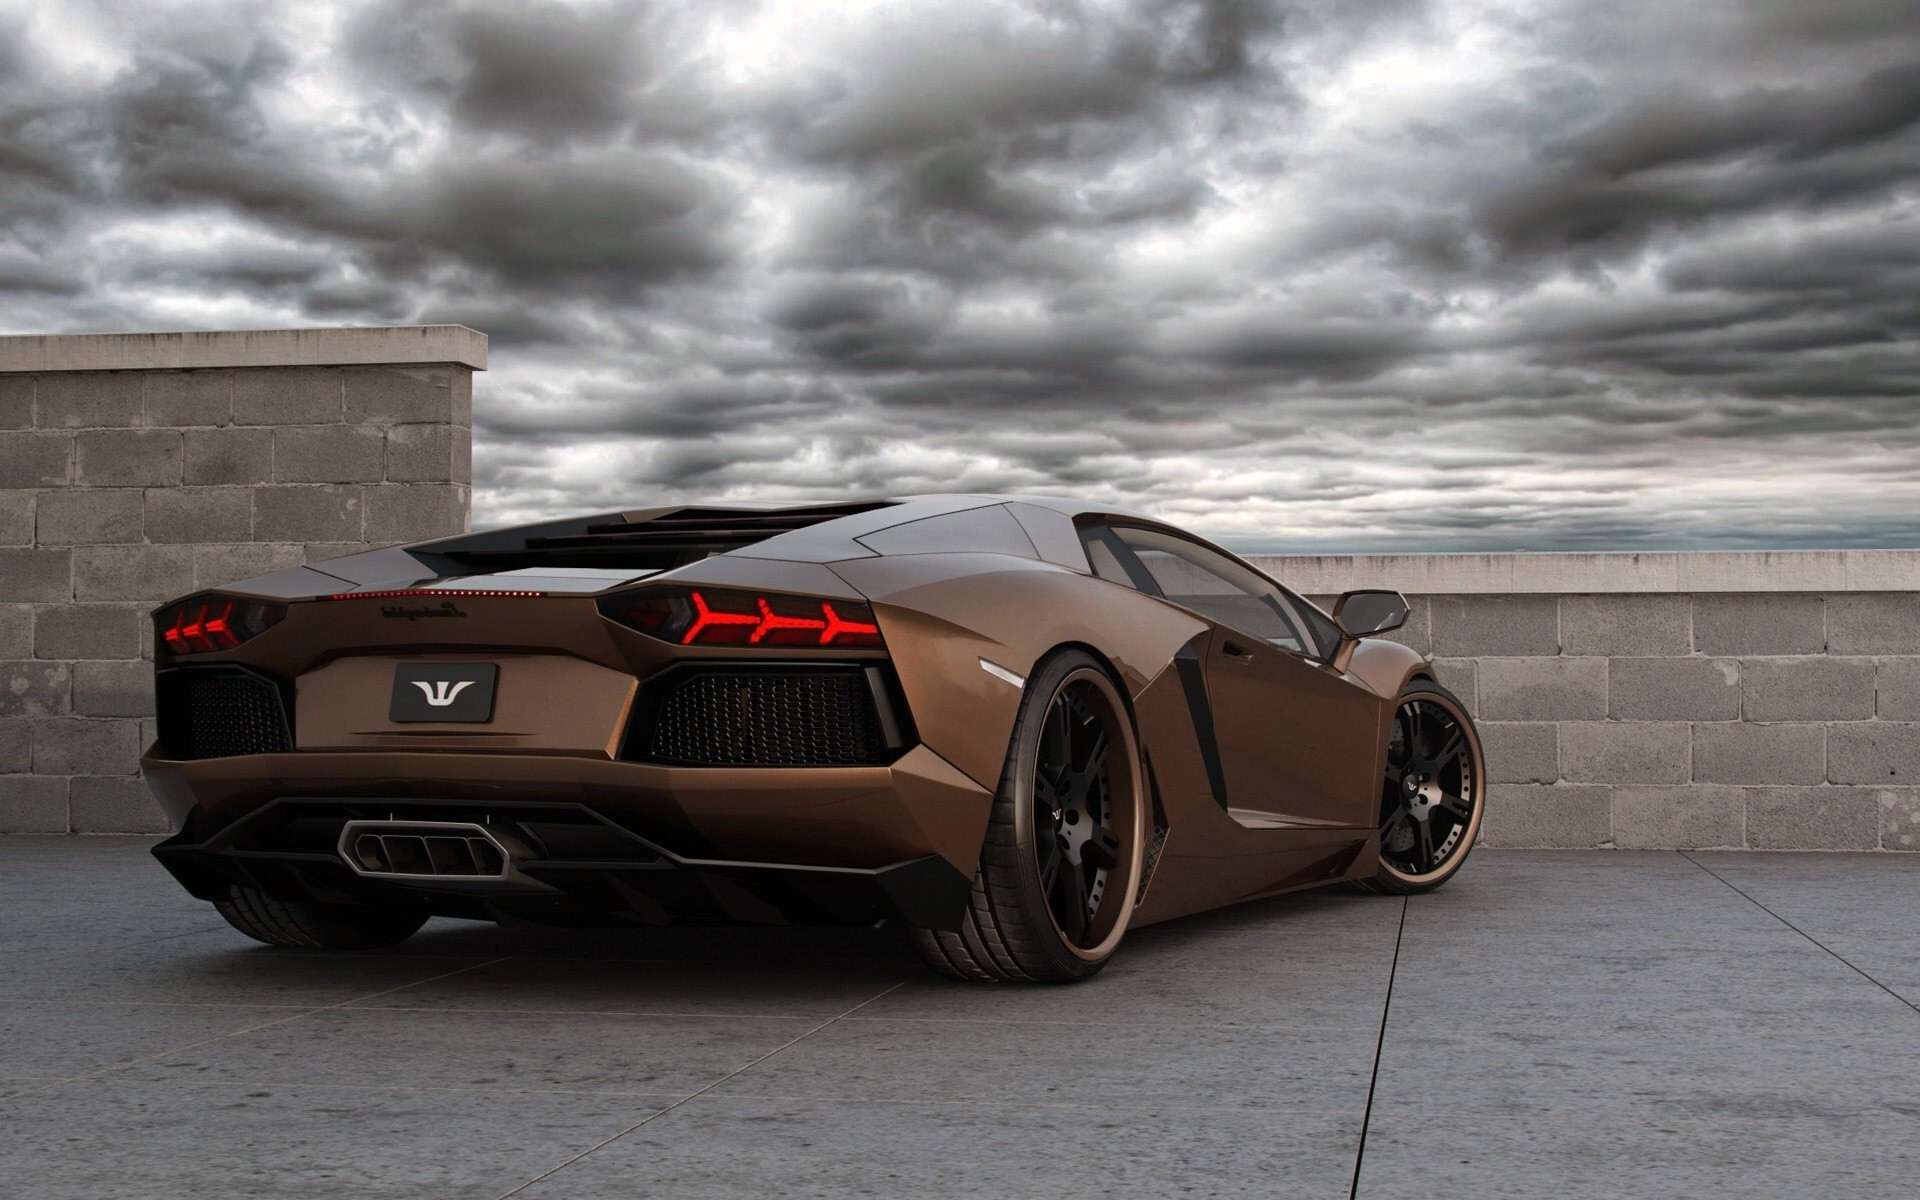 Aventador lamborghini car hd wallpaper hd wallpapers - Car desktop wallpaper ...